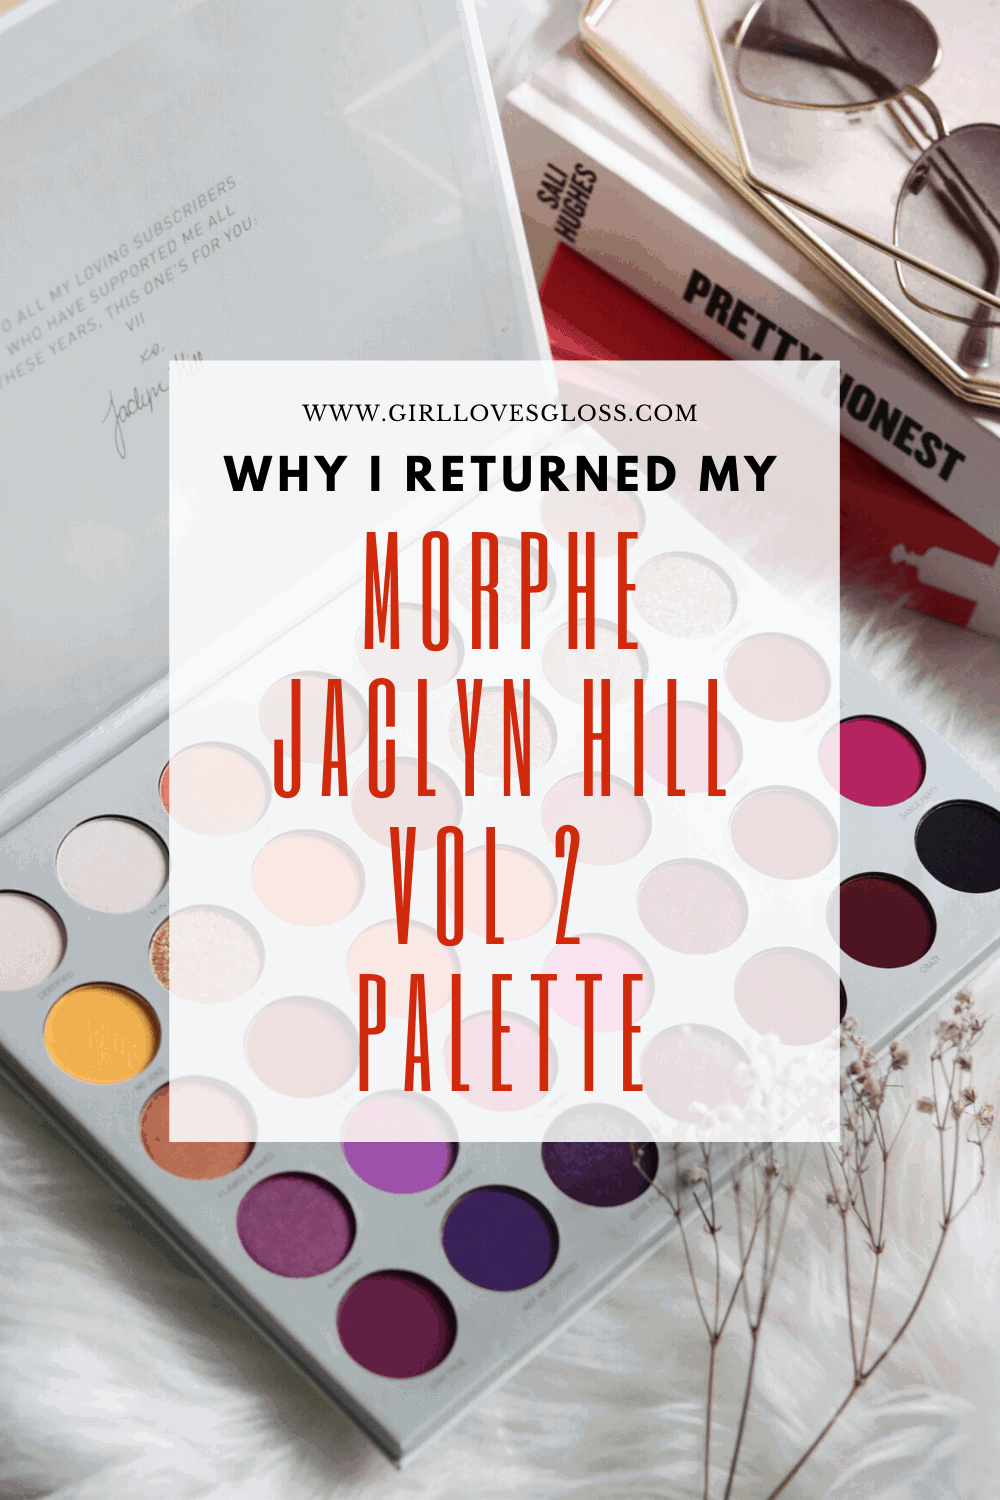 Why I returned my Morphe jaclyn Hill Vol 2 palette